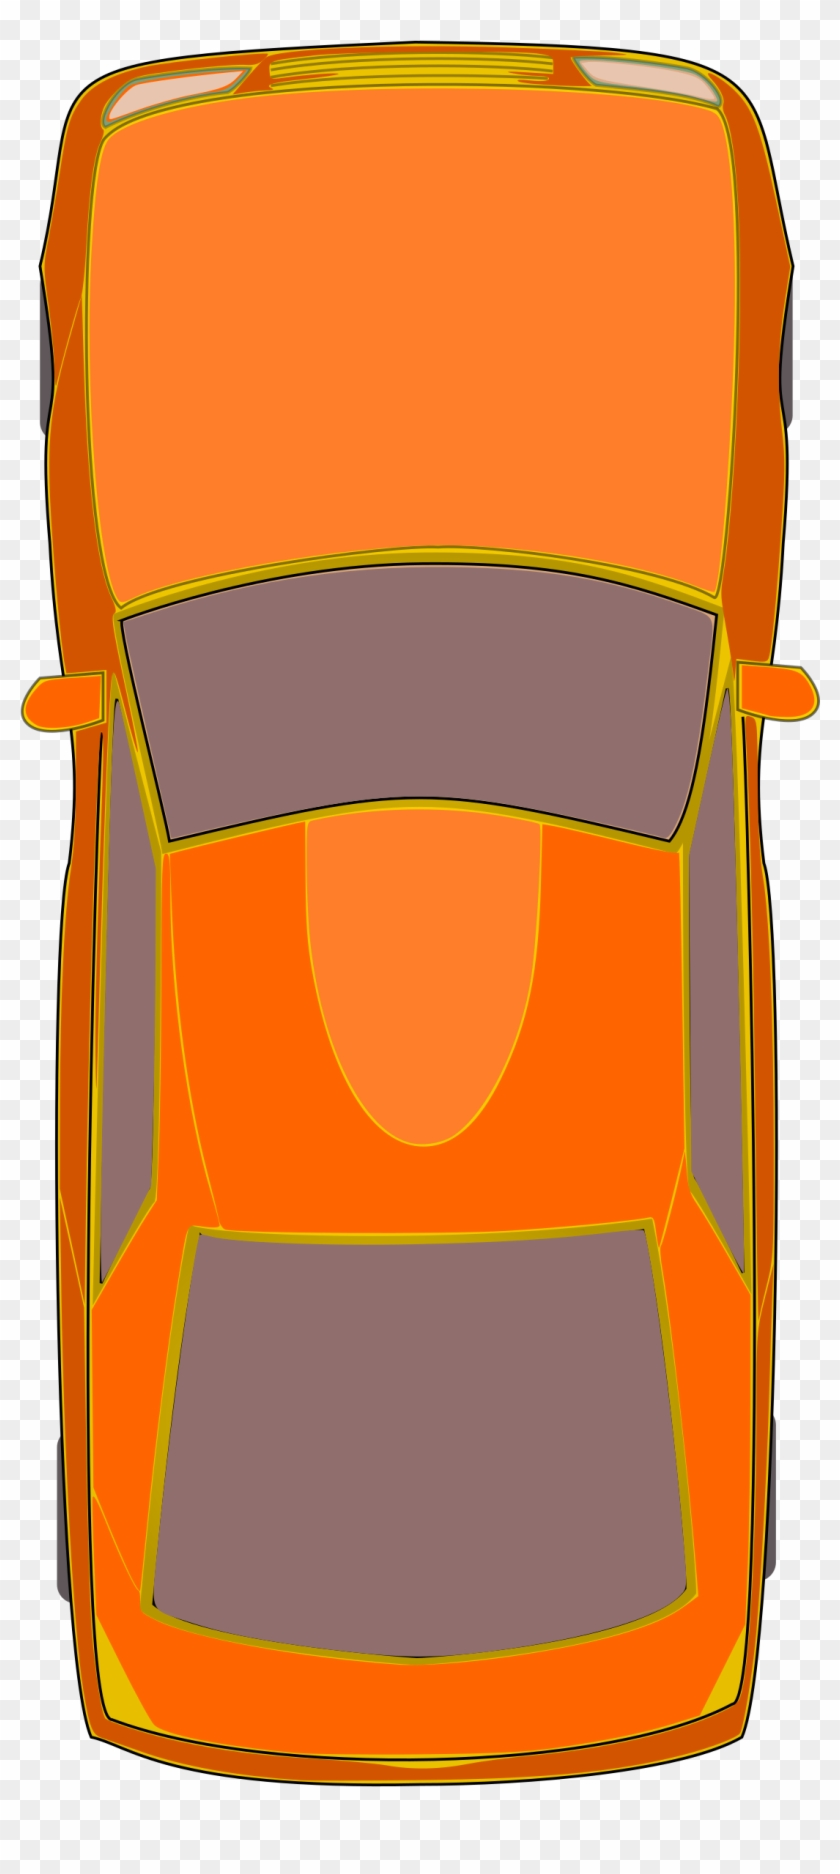 medium resolution of furniture clipart top view car clipart top view hd png download